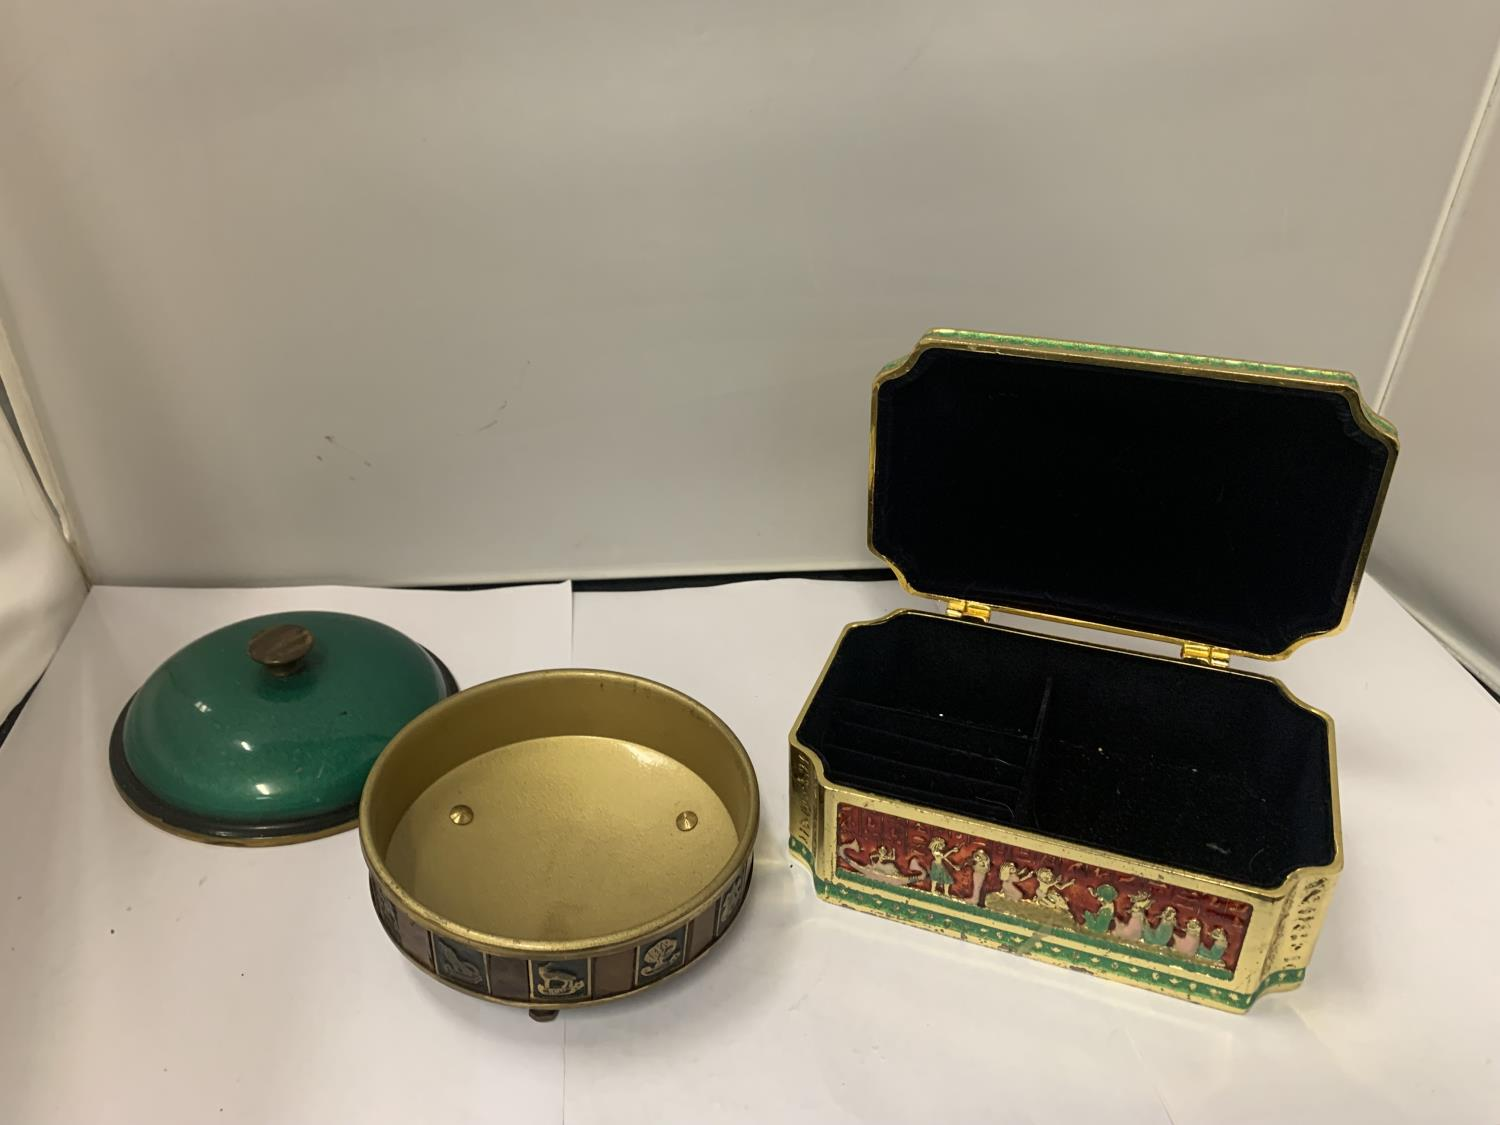 AN ORNATE LIDDED JEWELLERY BOX AND A FURTHER LIDDED TRINKET BOWL - Image 3 of 3